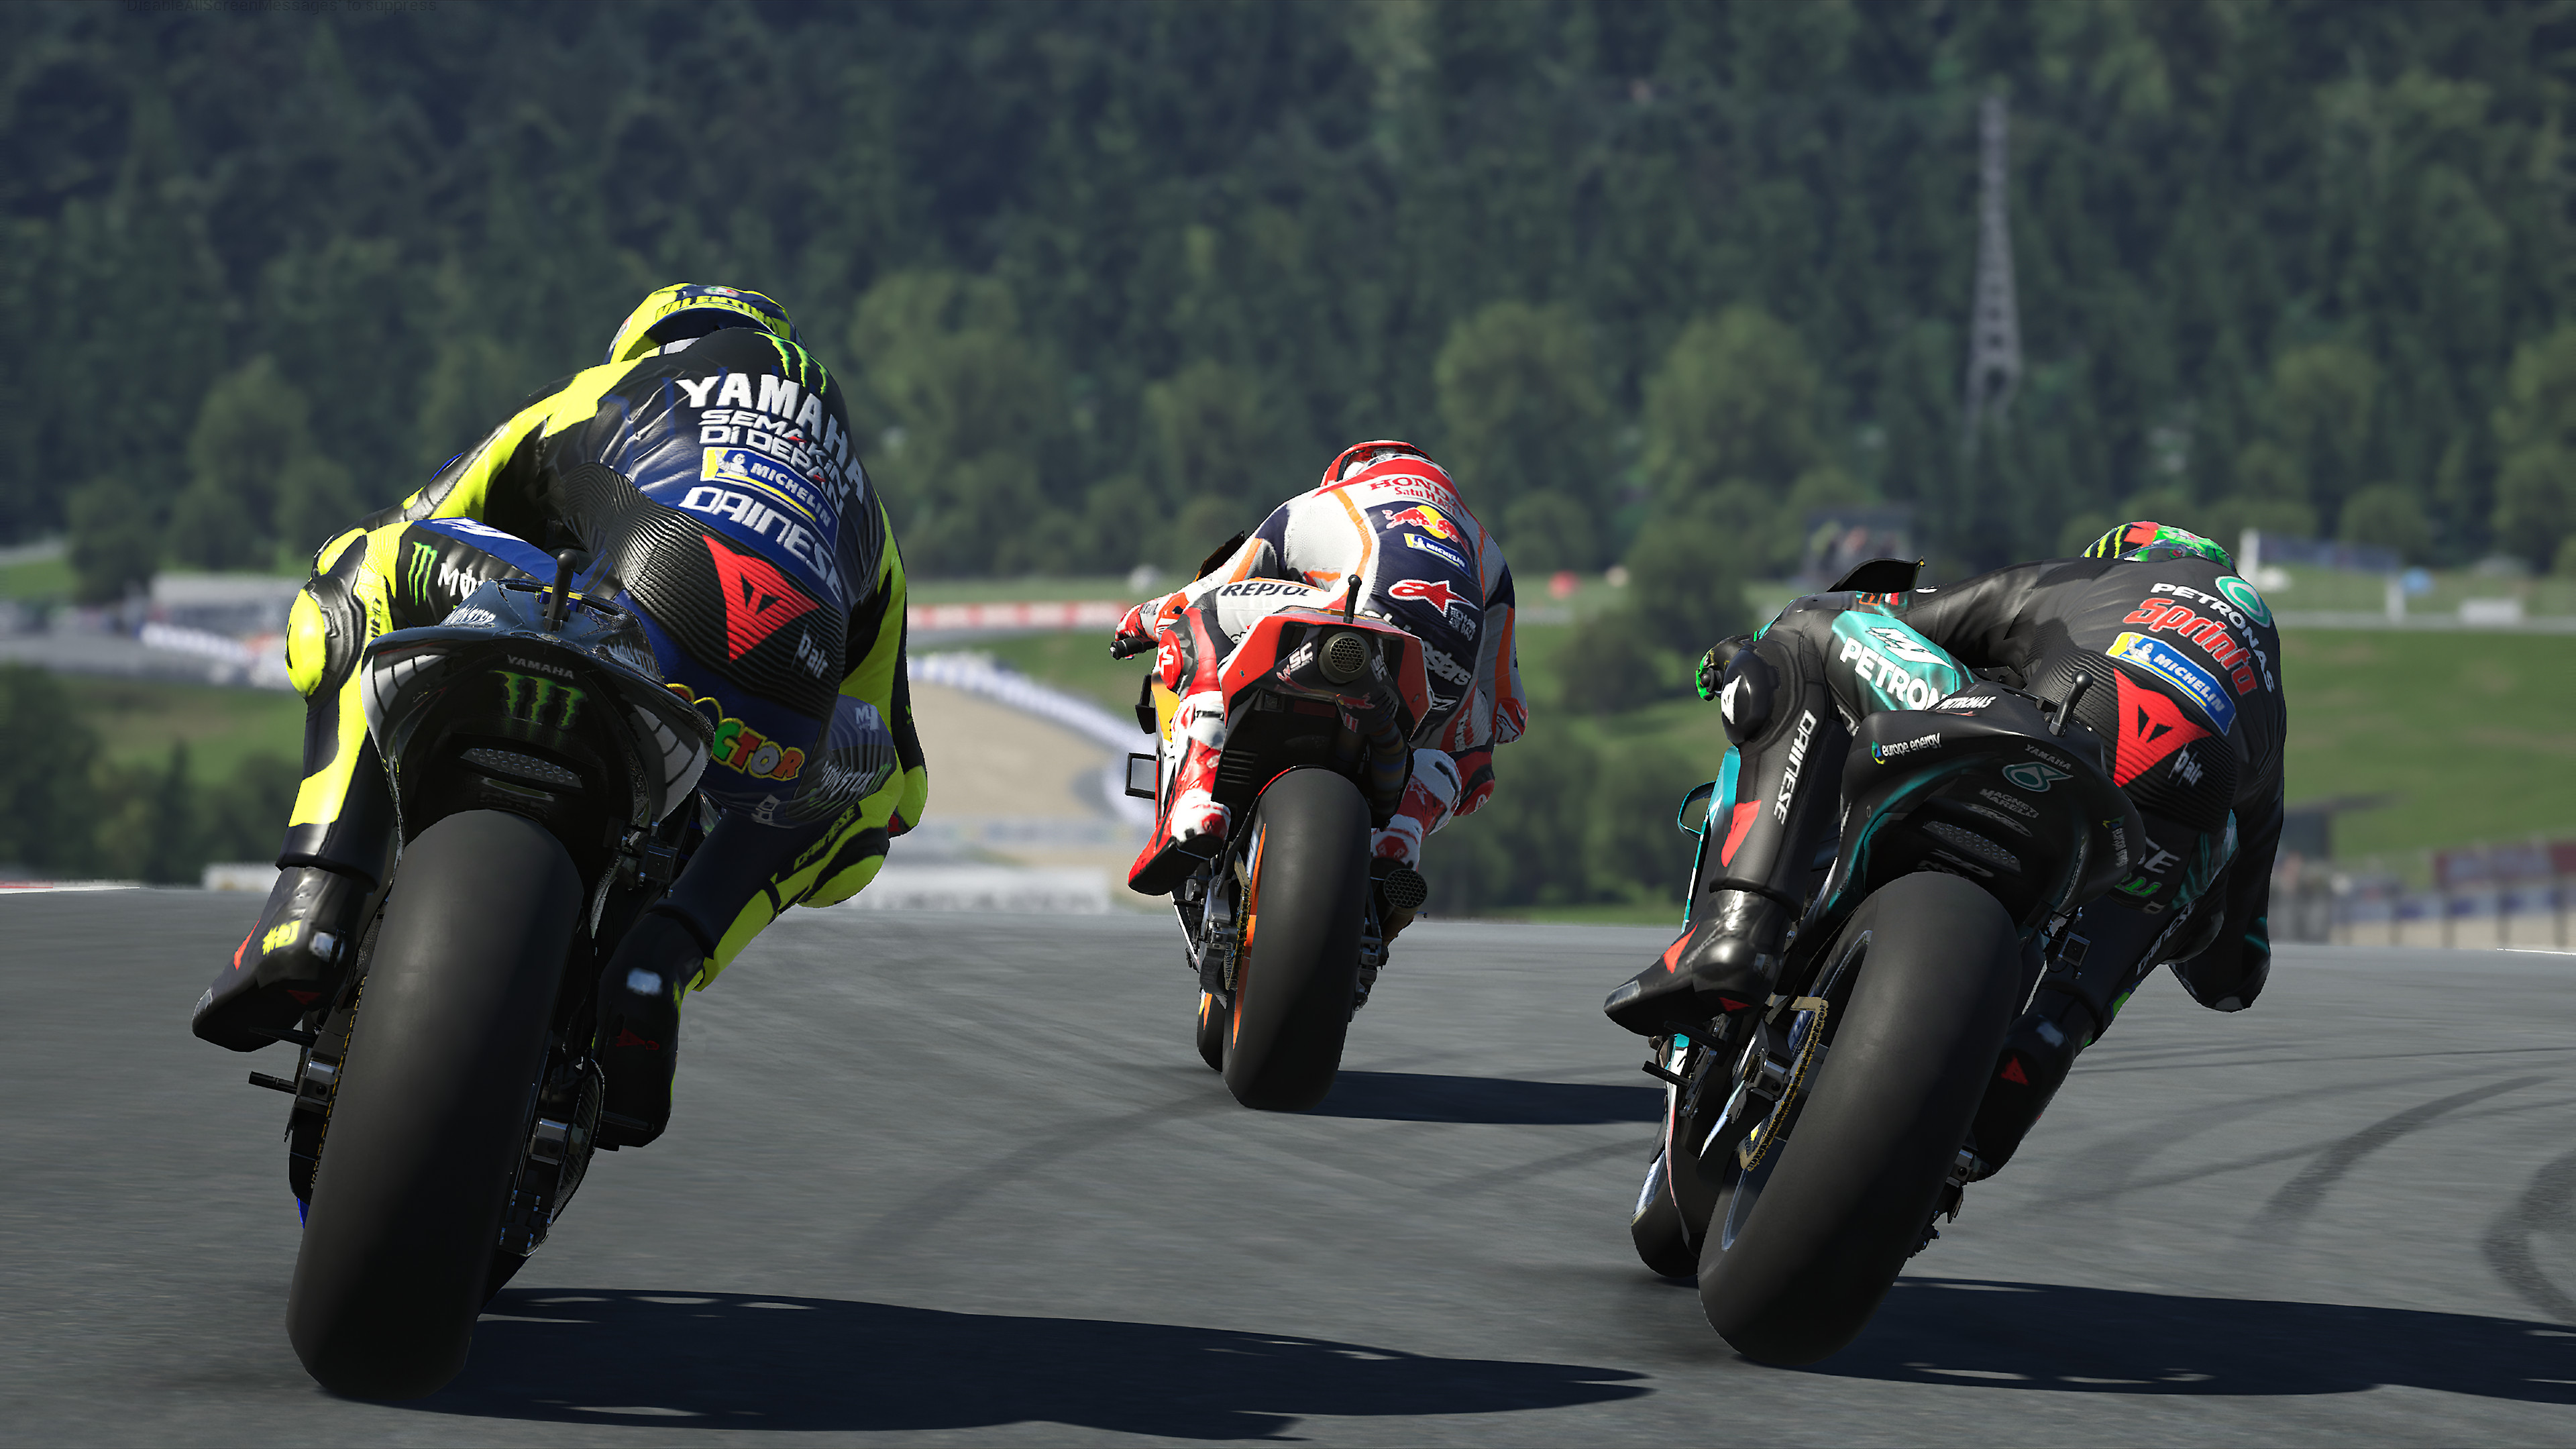 MotoGP™20 - Three racers, seen from behind